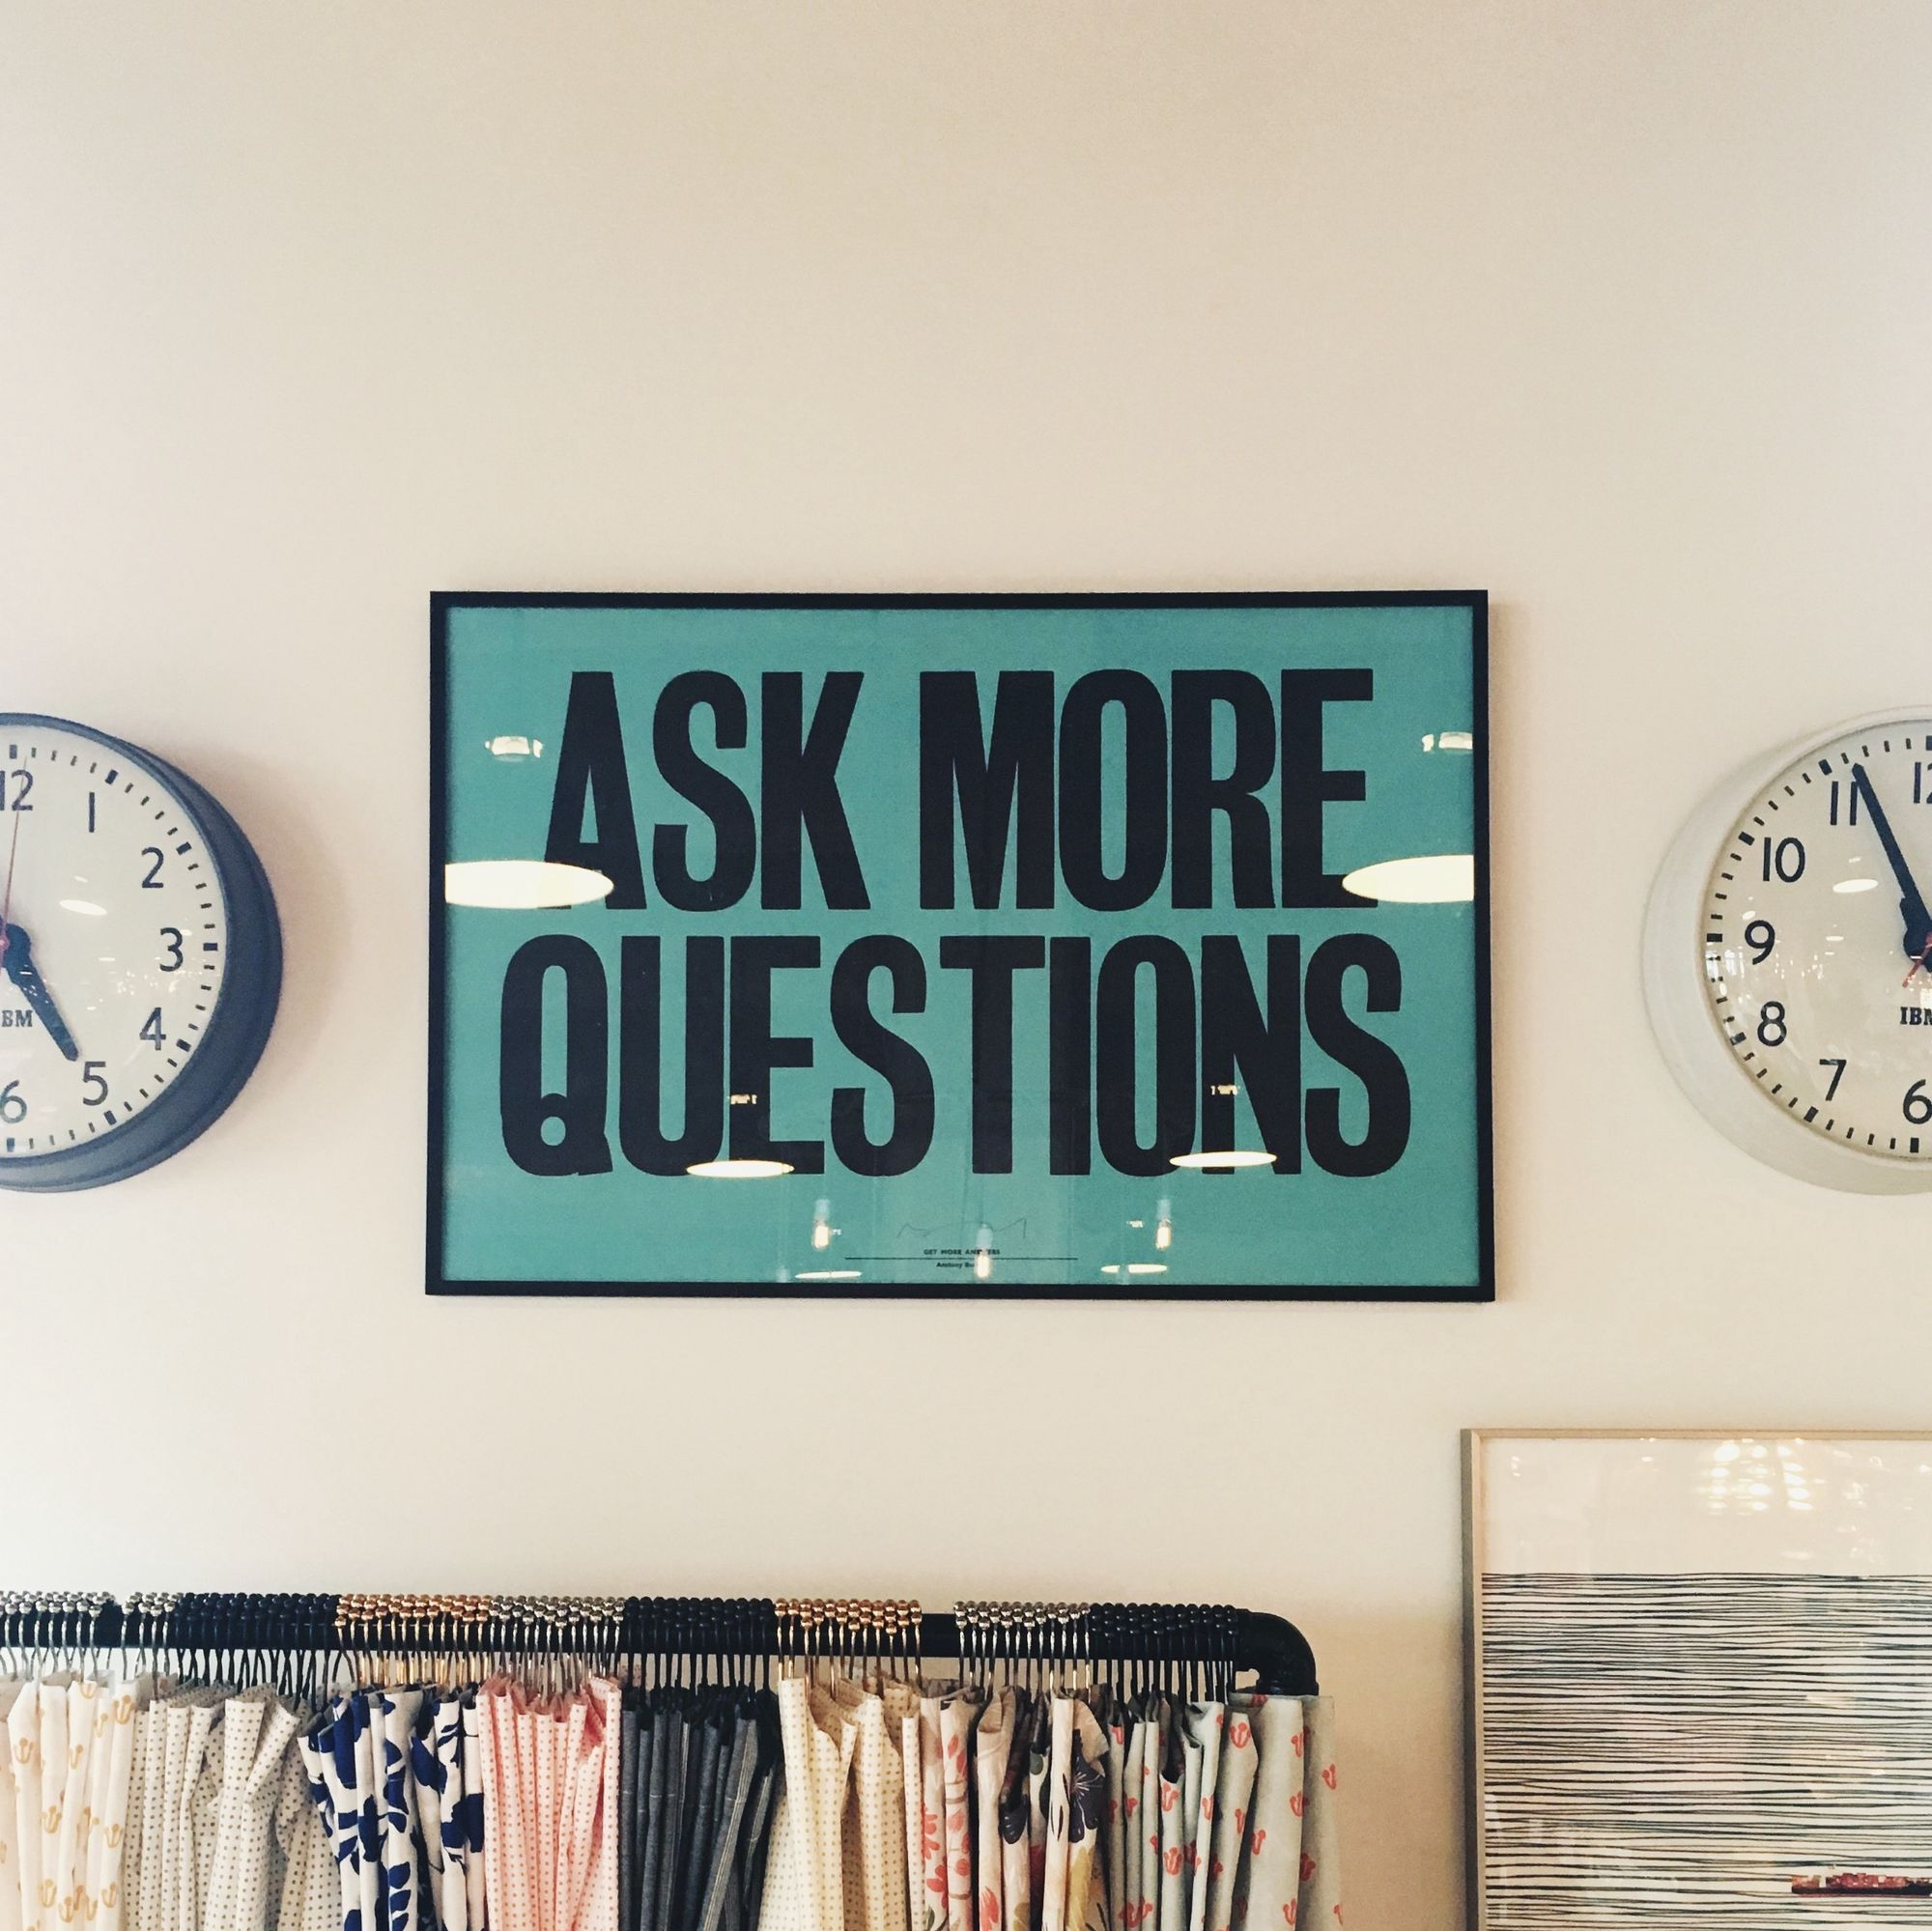 """A teal colored graphic poster with the text """"Ask More Questions"""" hanging on a beige wall between two IBM branded clocks"""